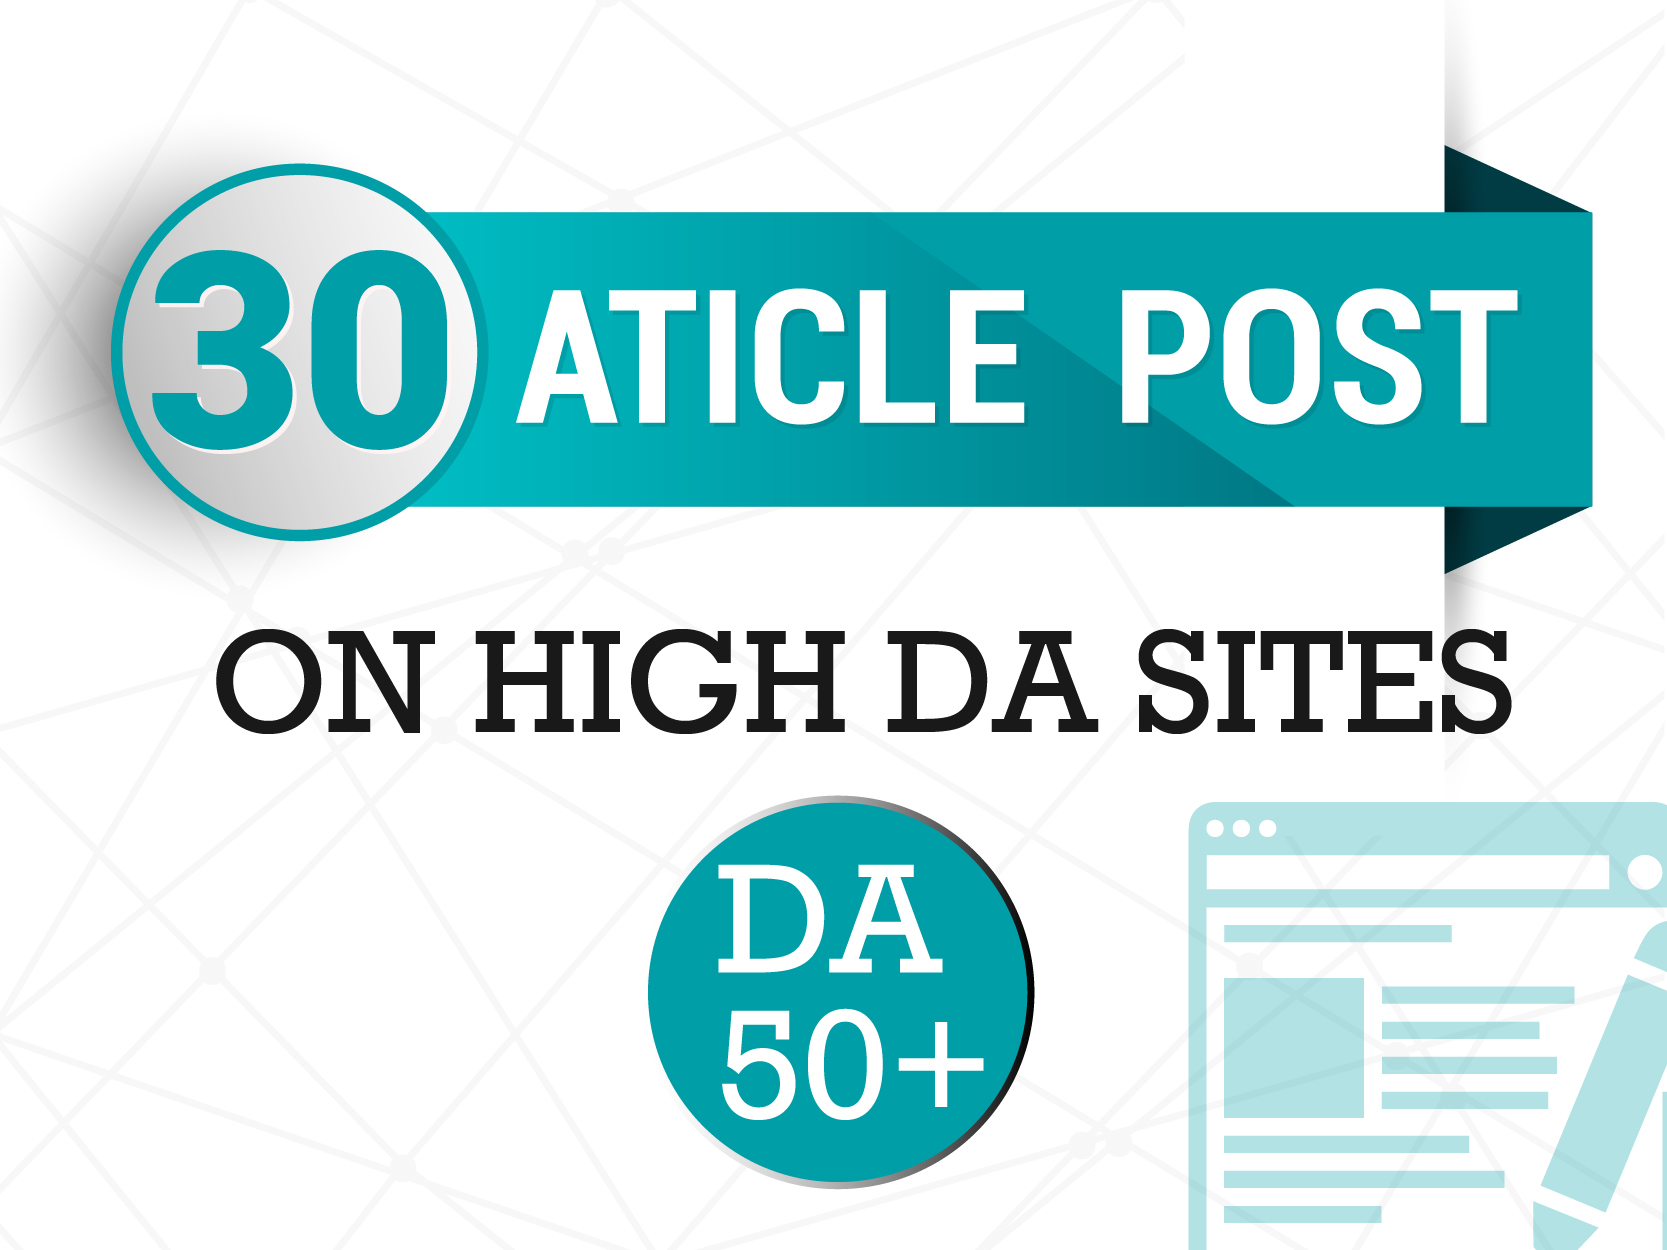 Do 25 Article Post On High DA50+ Sites